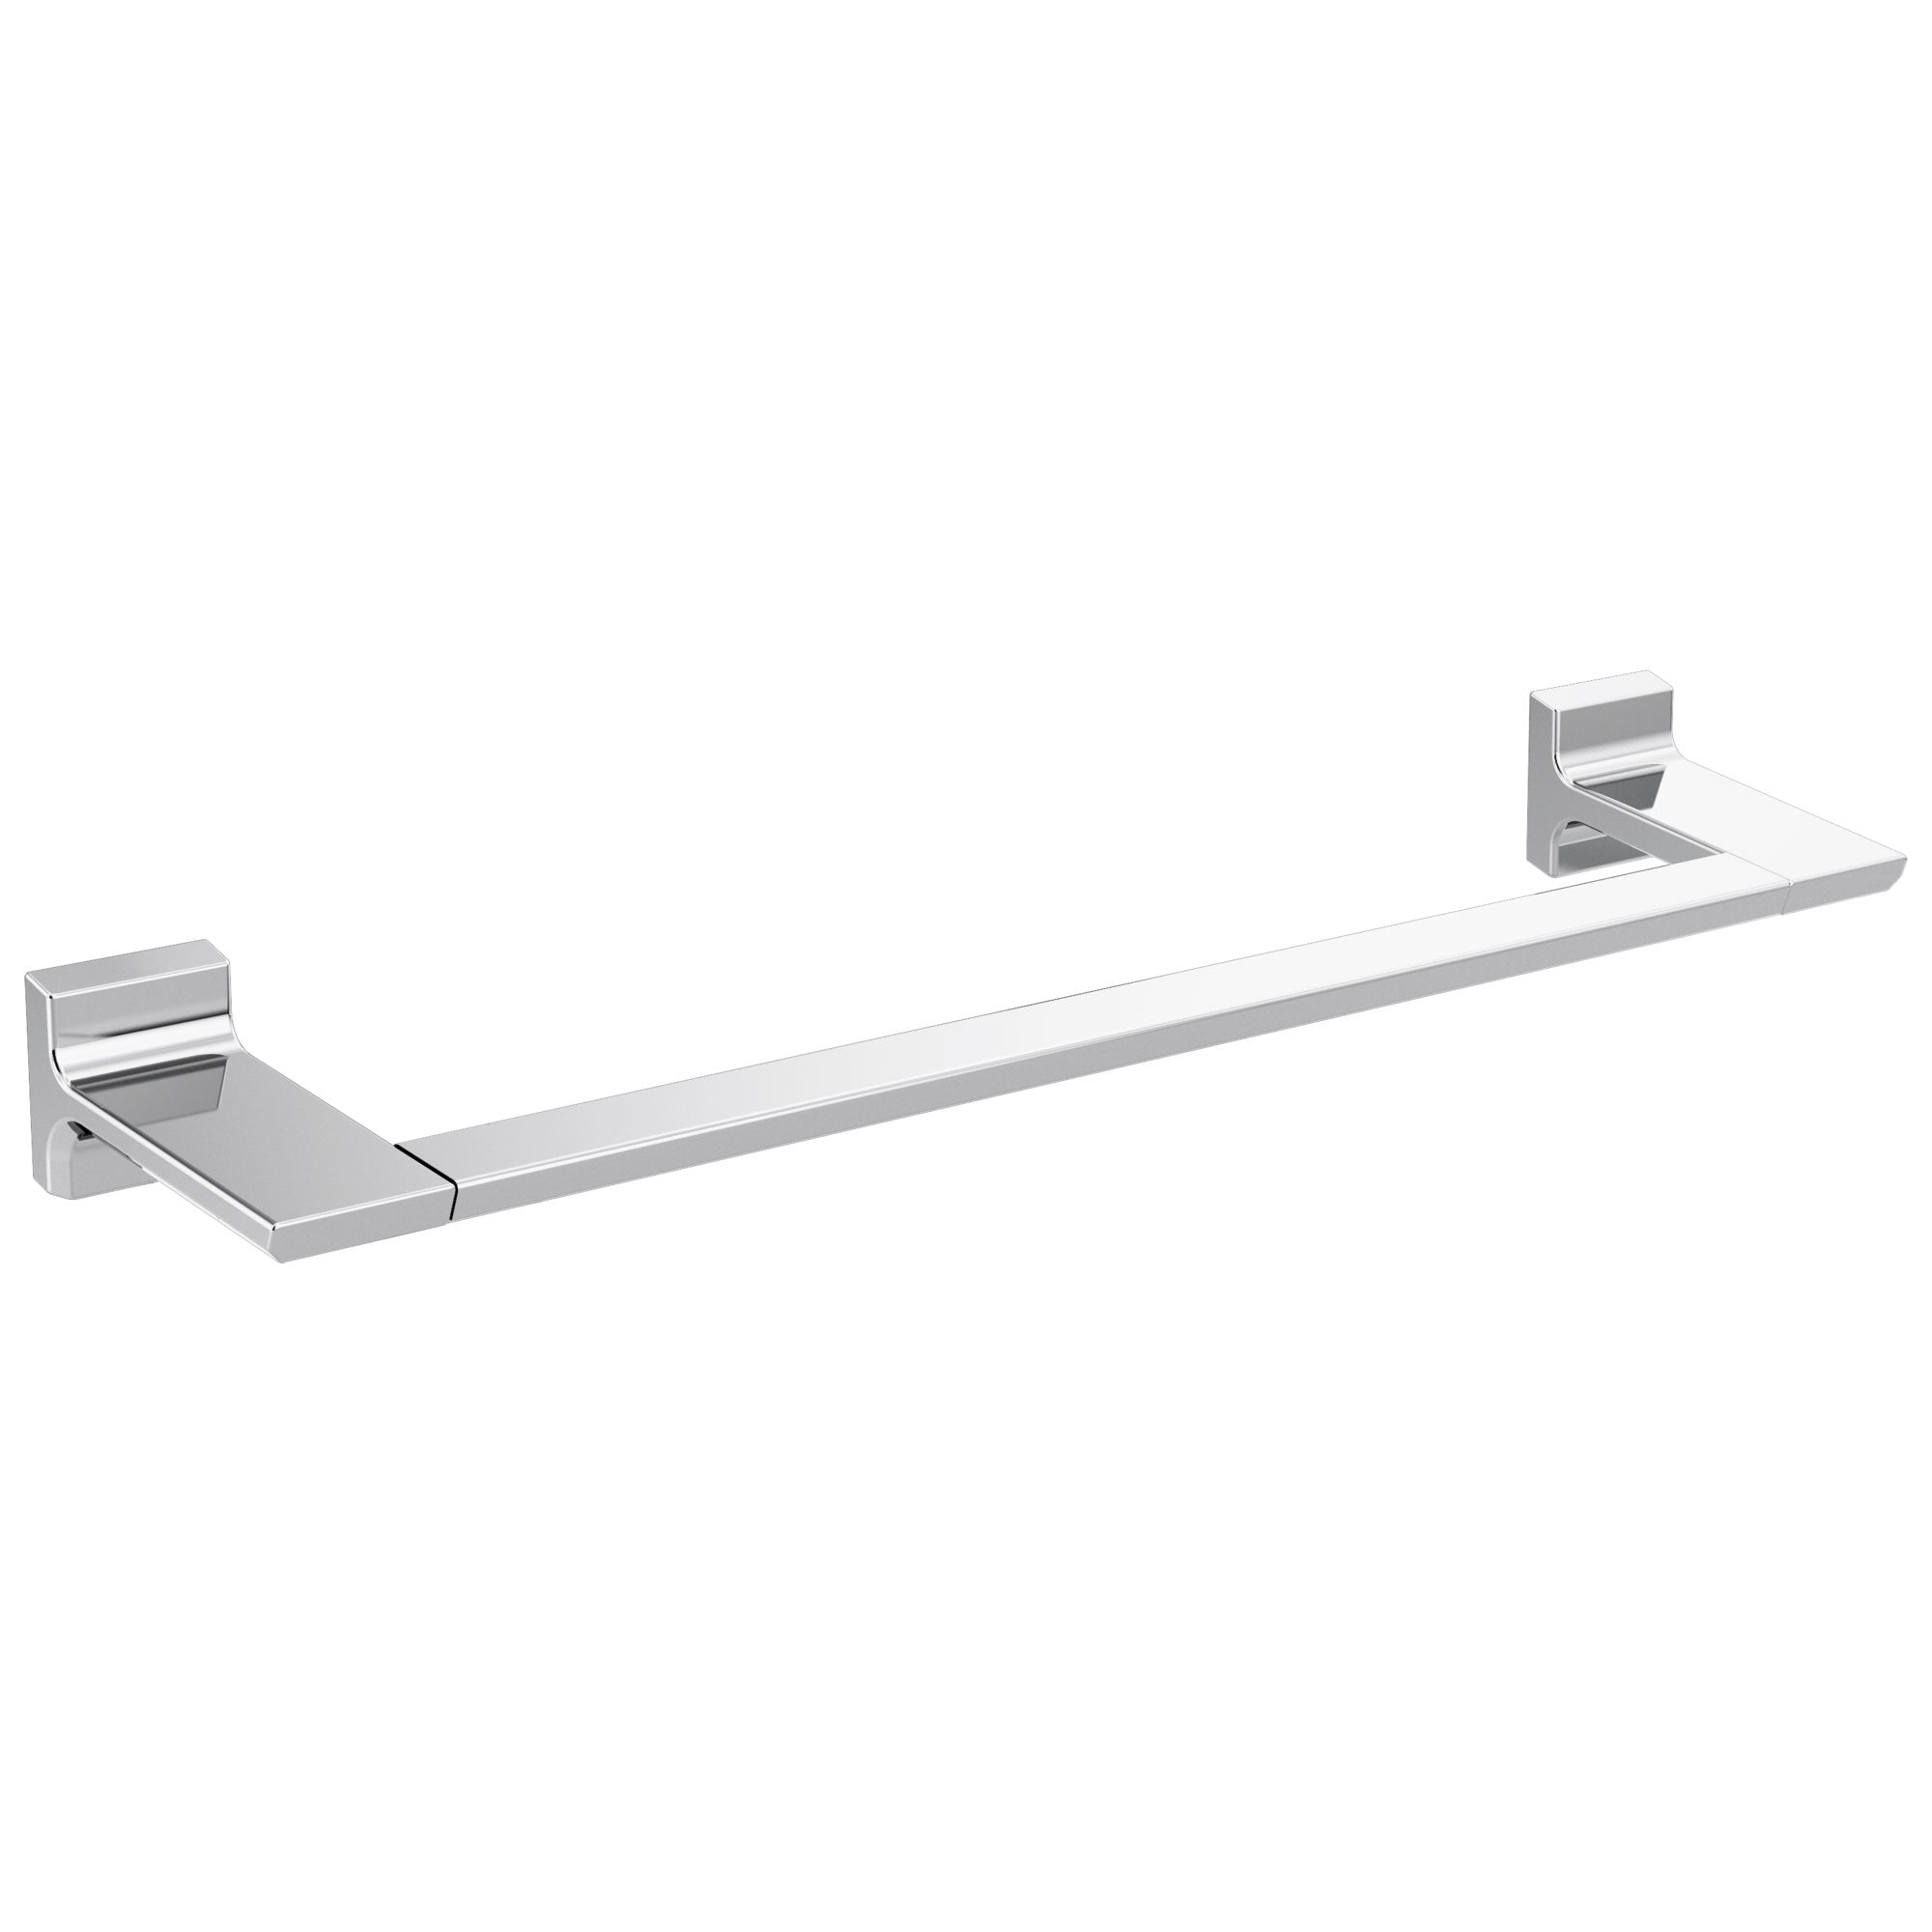 "Delta Pivotal Chrome Finish 18"" Single Towel Bar D79918"